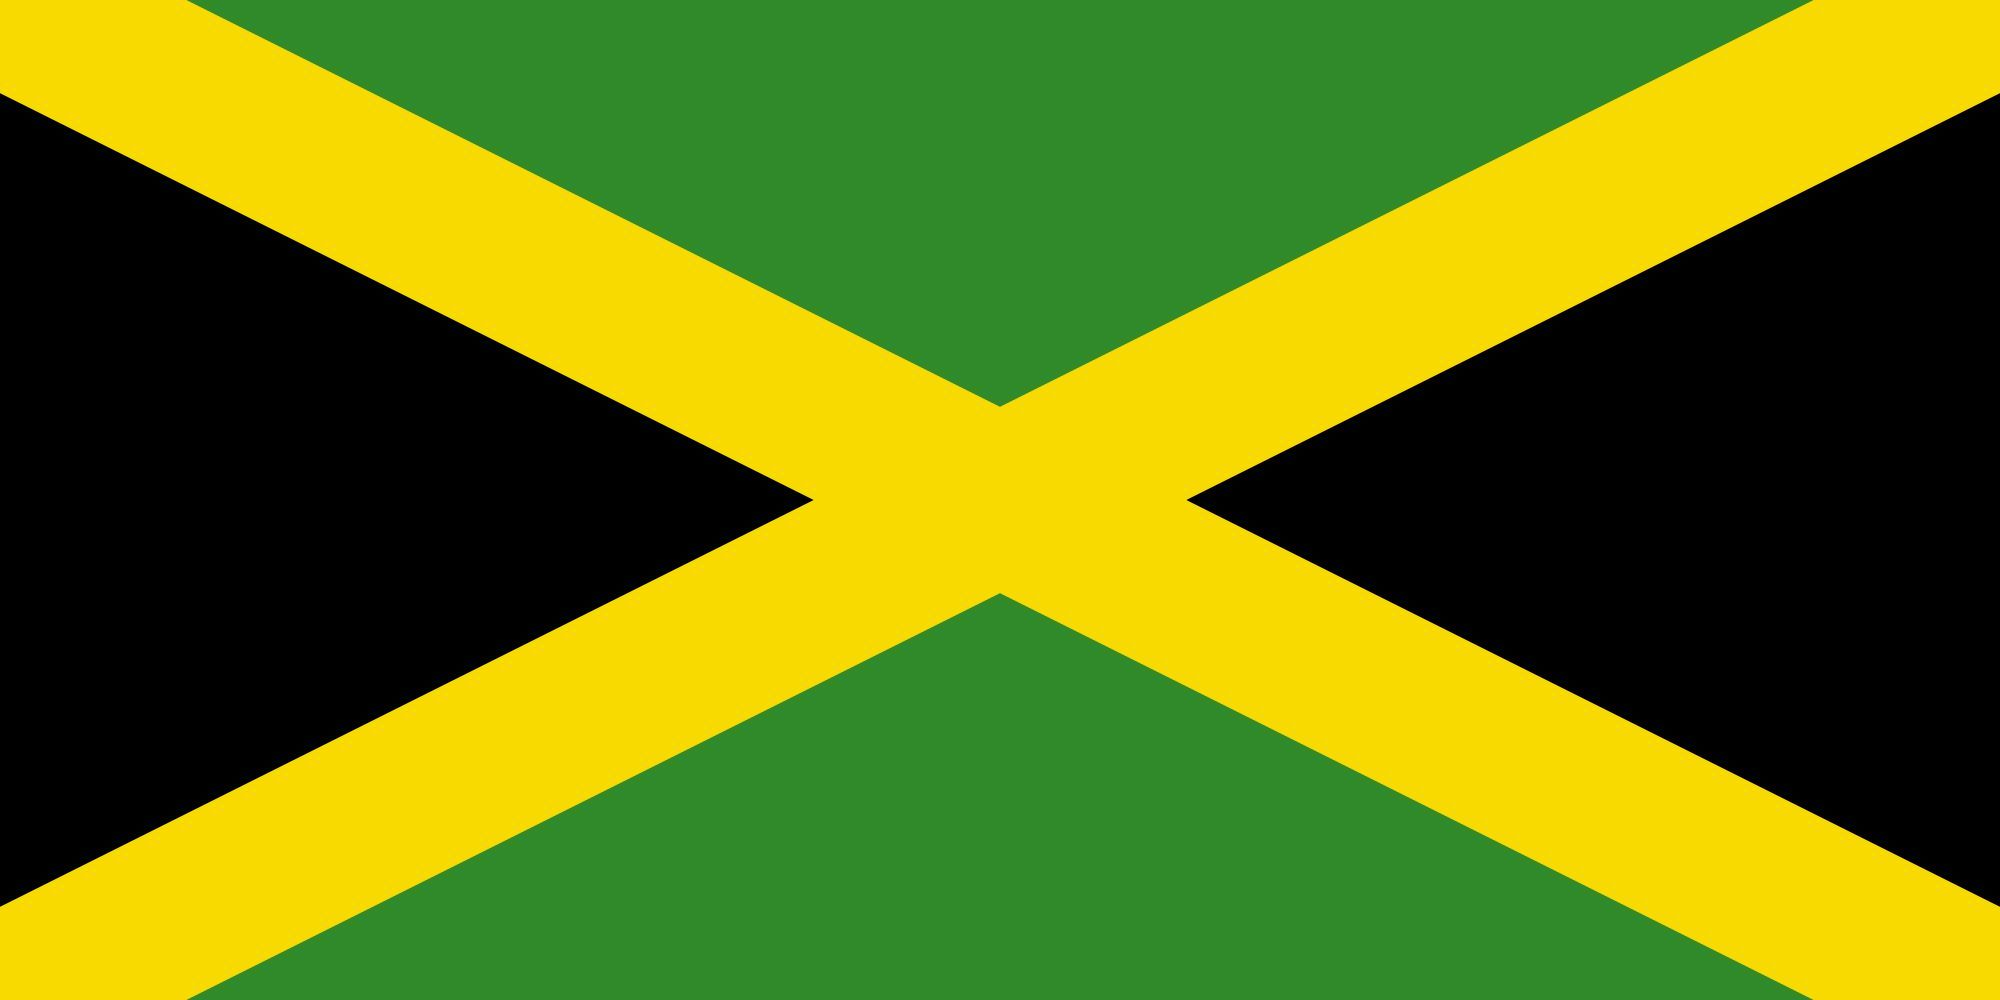 Jamaica Country Flag Jamaica Flag Jamaica Flags Of The World